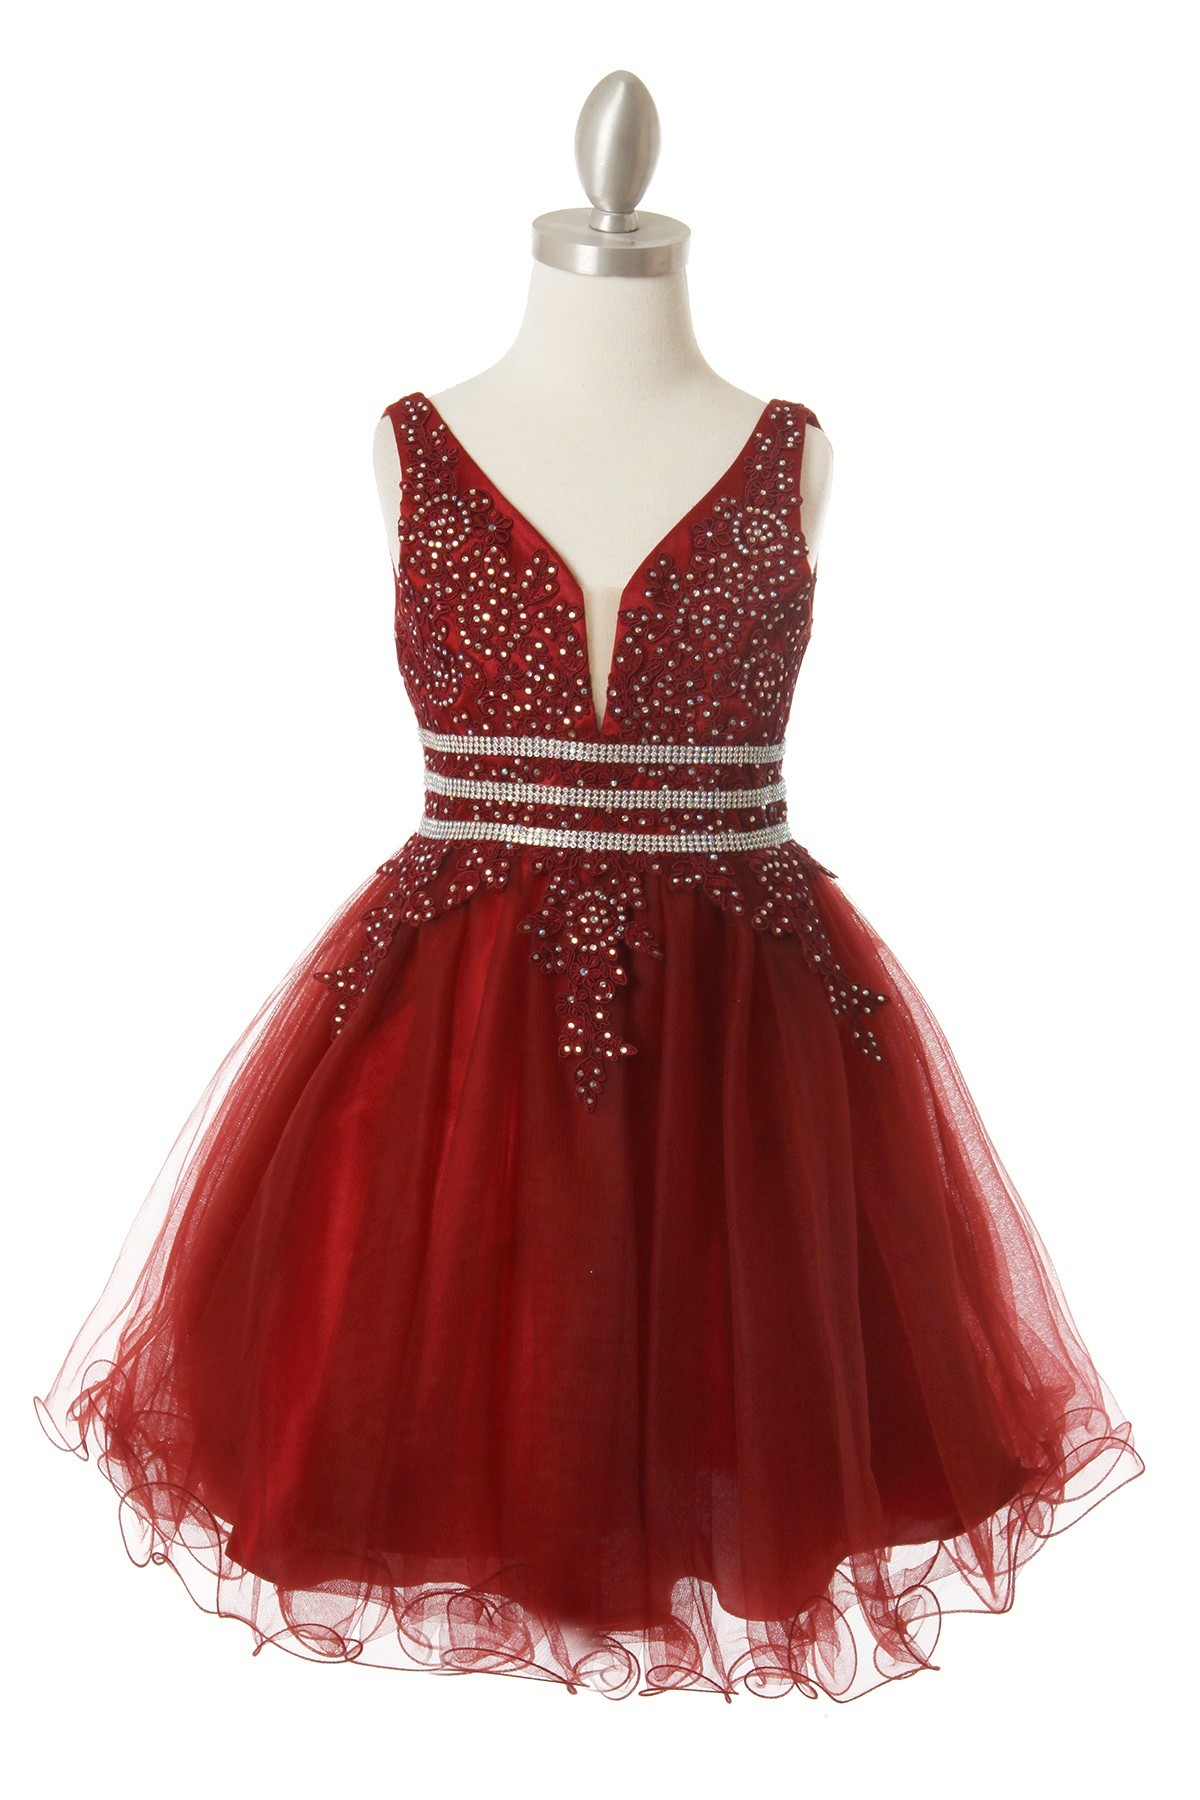 Girls short tulle burgundy dress.  Lace covered bodice trimmed with ab stones.  Completed with low cut back, size 2-16